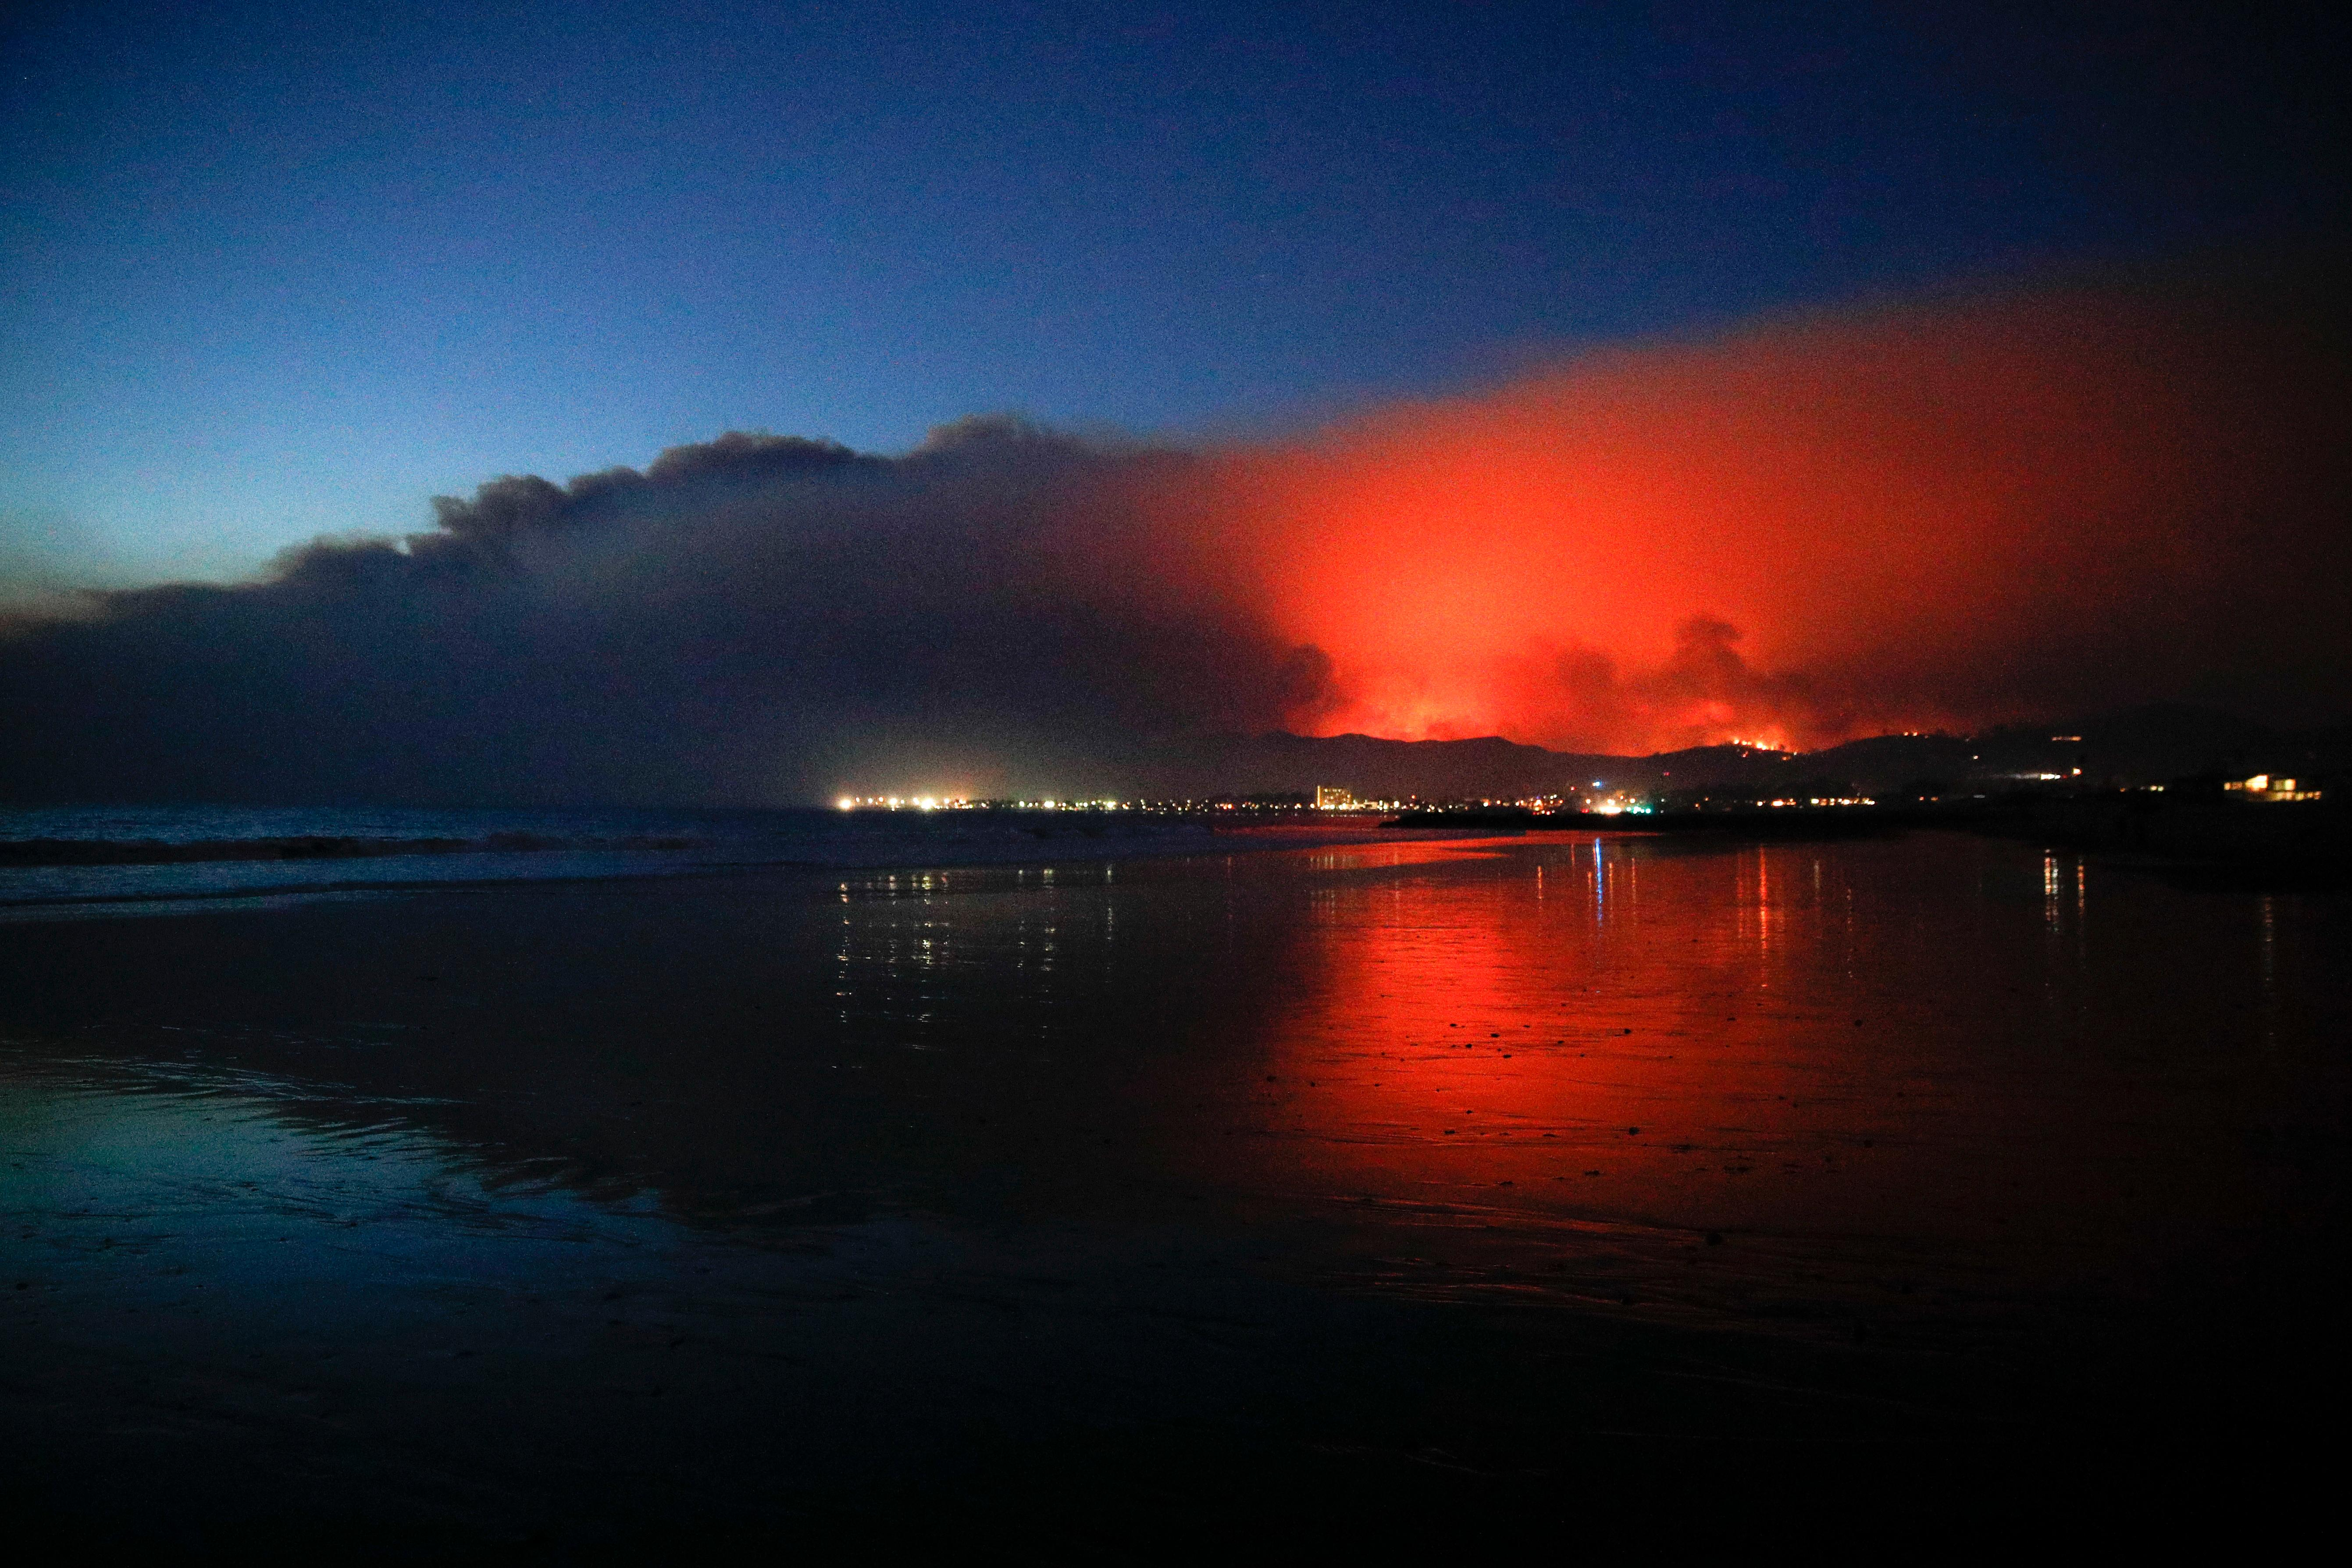 A wildfire continues to burn as its red glow is reflected on the beach Tuesday, Dec. 5, 2017, in Ventura, Calif. Raked by ferocious Santa Ana winds, explosive wildfires northwest of Los Angeles and in the city's foothills burned a psychiatric hospital and scores of homes Tuesday and forced the evacuation of tens of thousands of people. (AP Photo/Jae C. Hong)